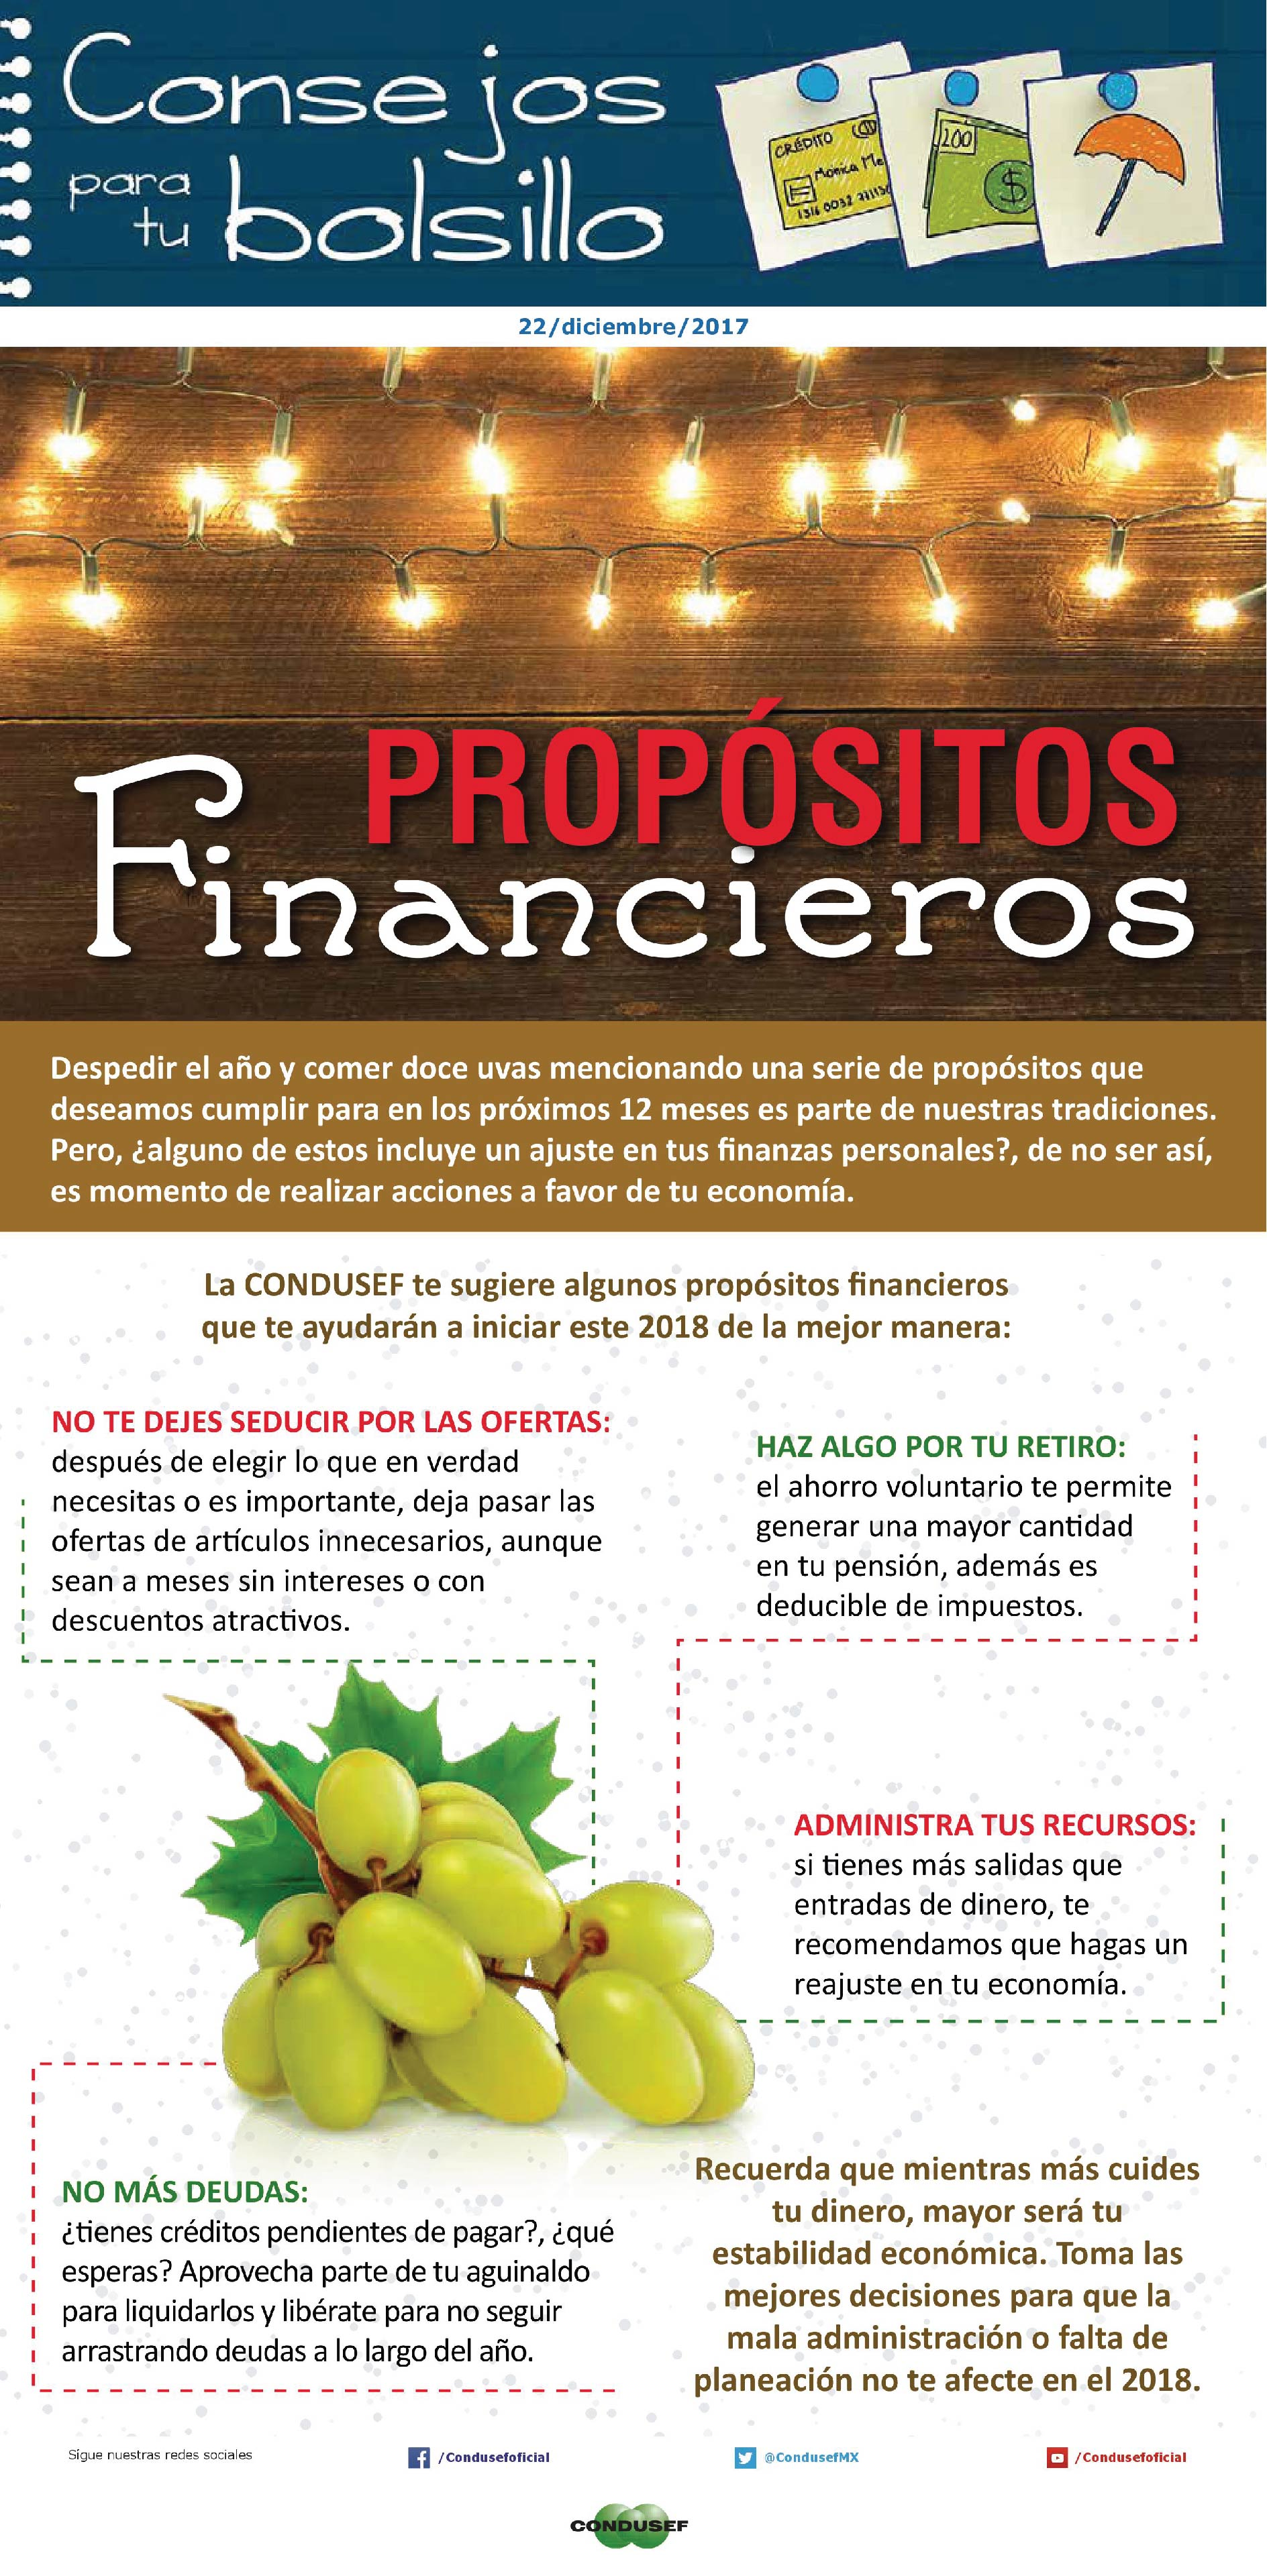 Propósitos financieros